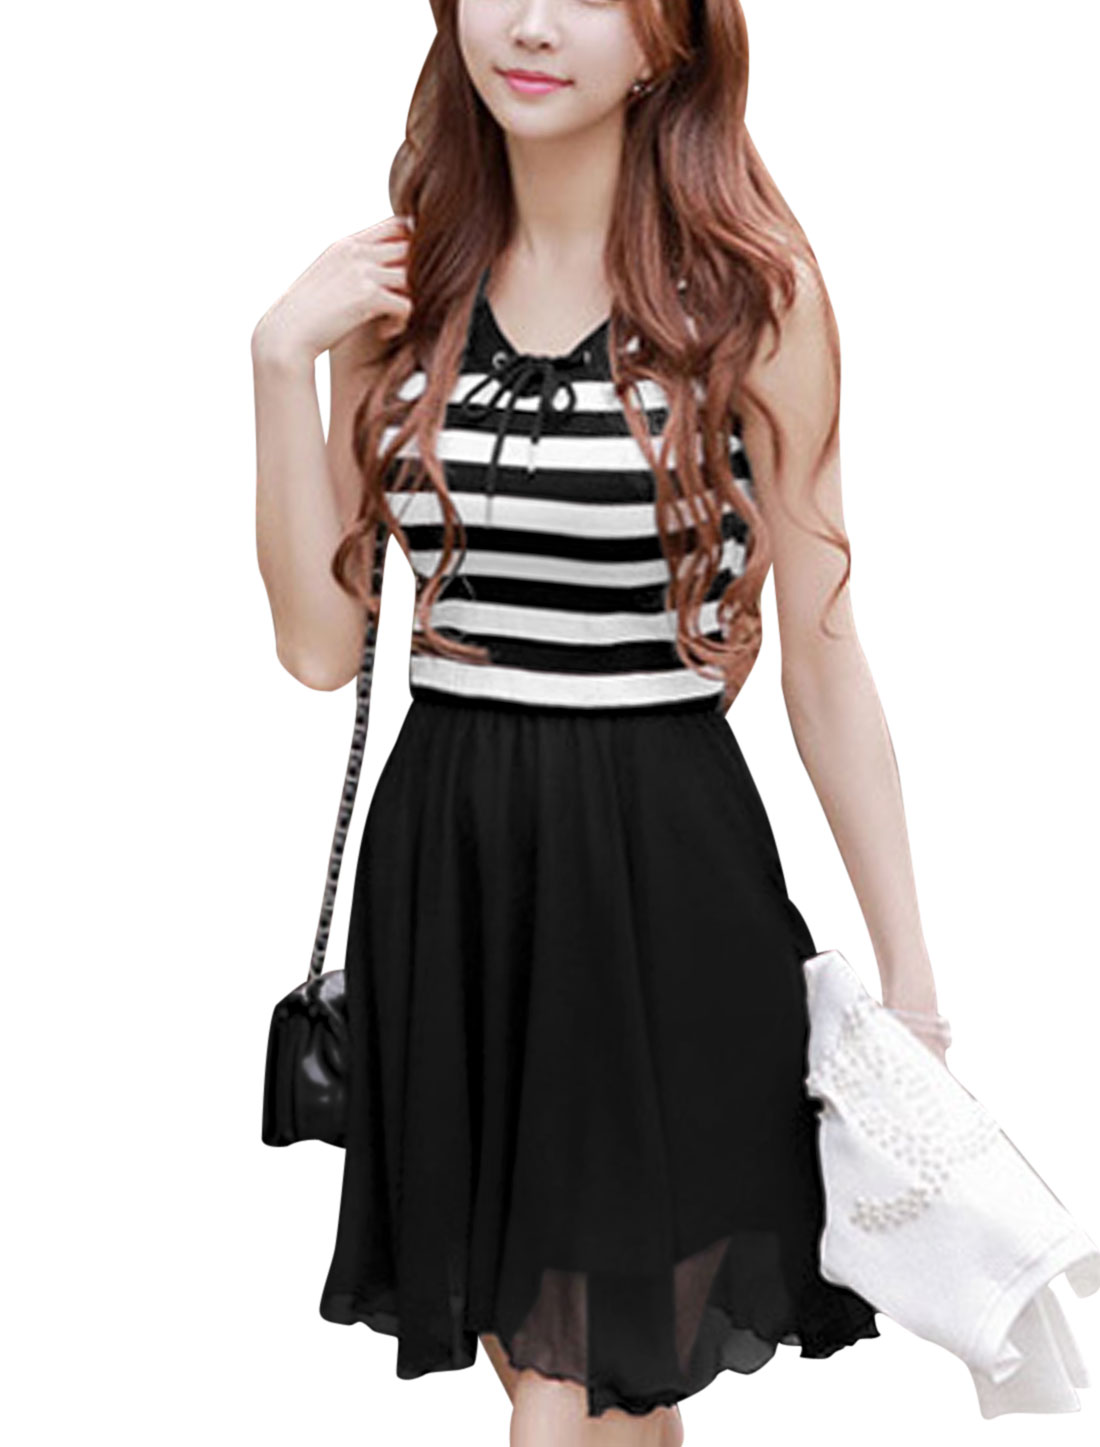 Lady Drawcord Neckline Stripes Stretch Waist Sweet Tank Dress Black M